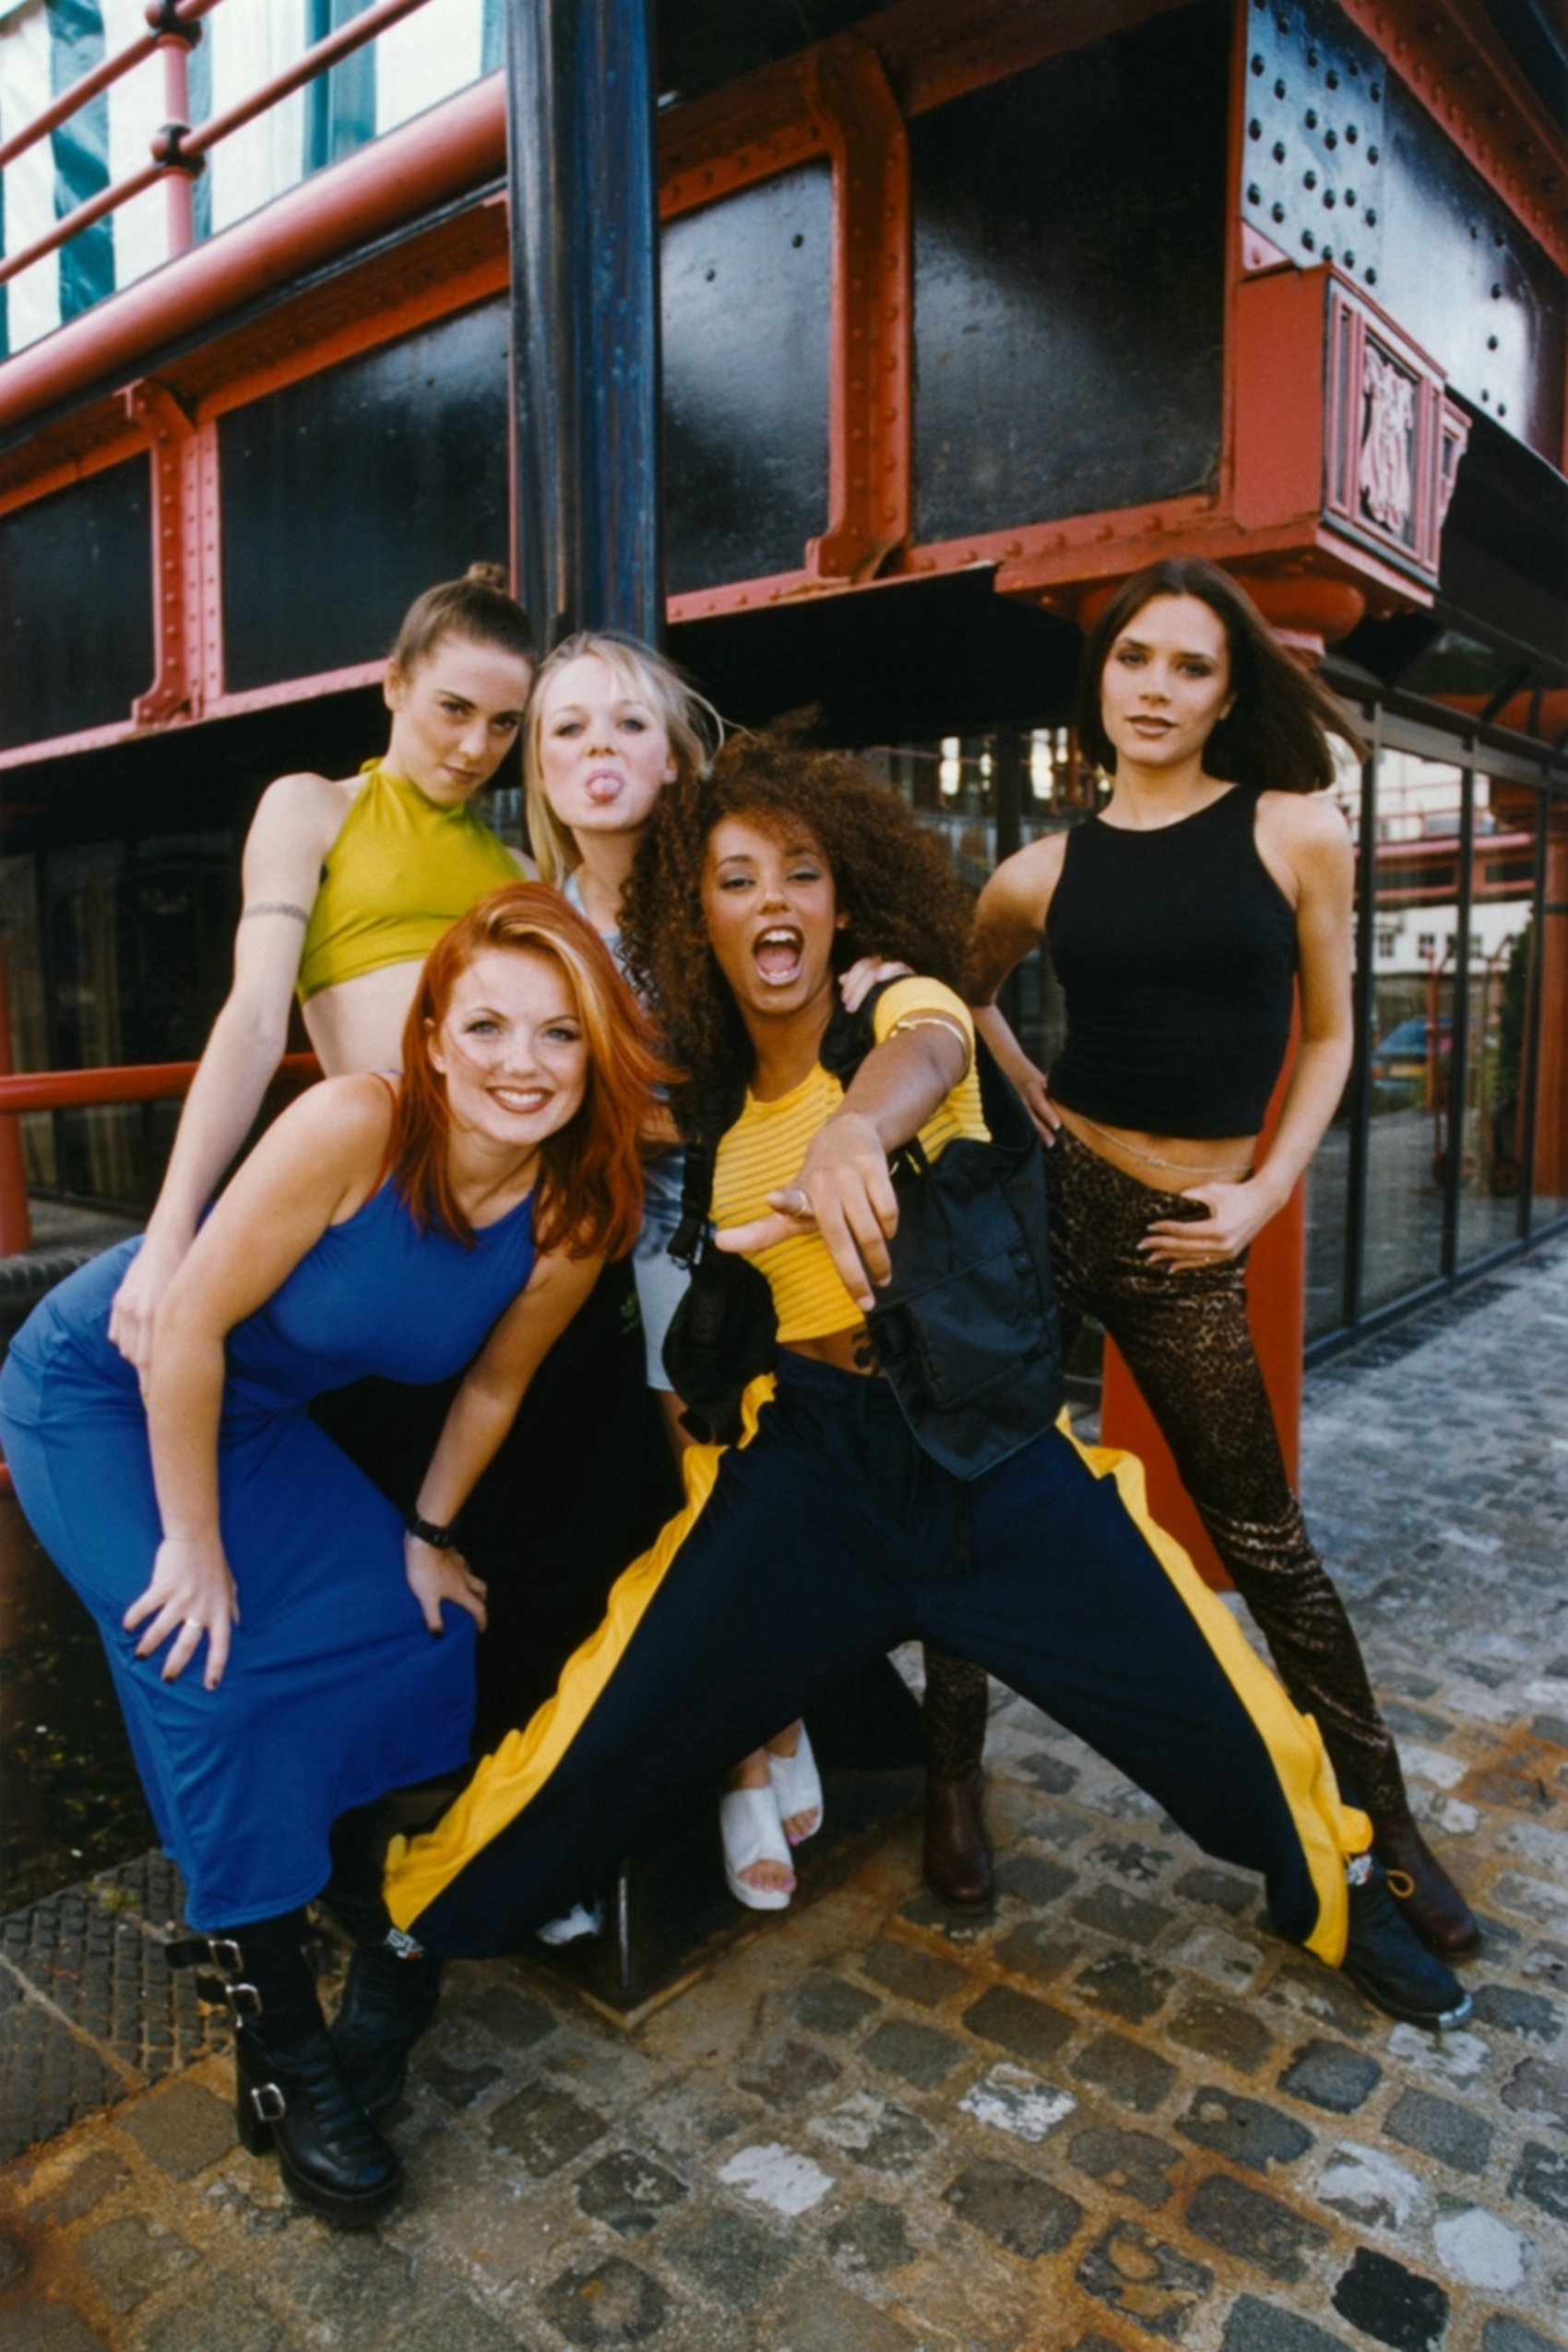 Wallpaper About Girls Spice Girls Photo 74 Of 144 Pics Wallpaper Photo